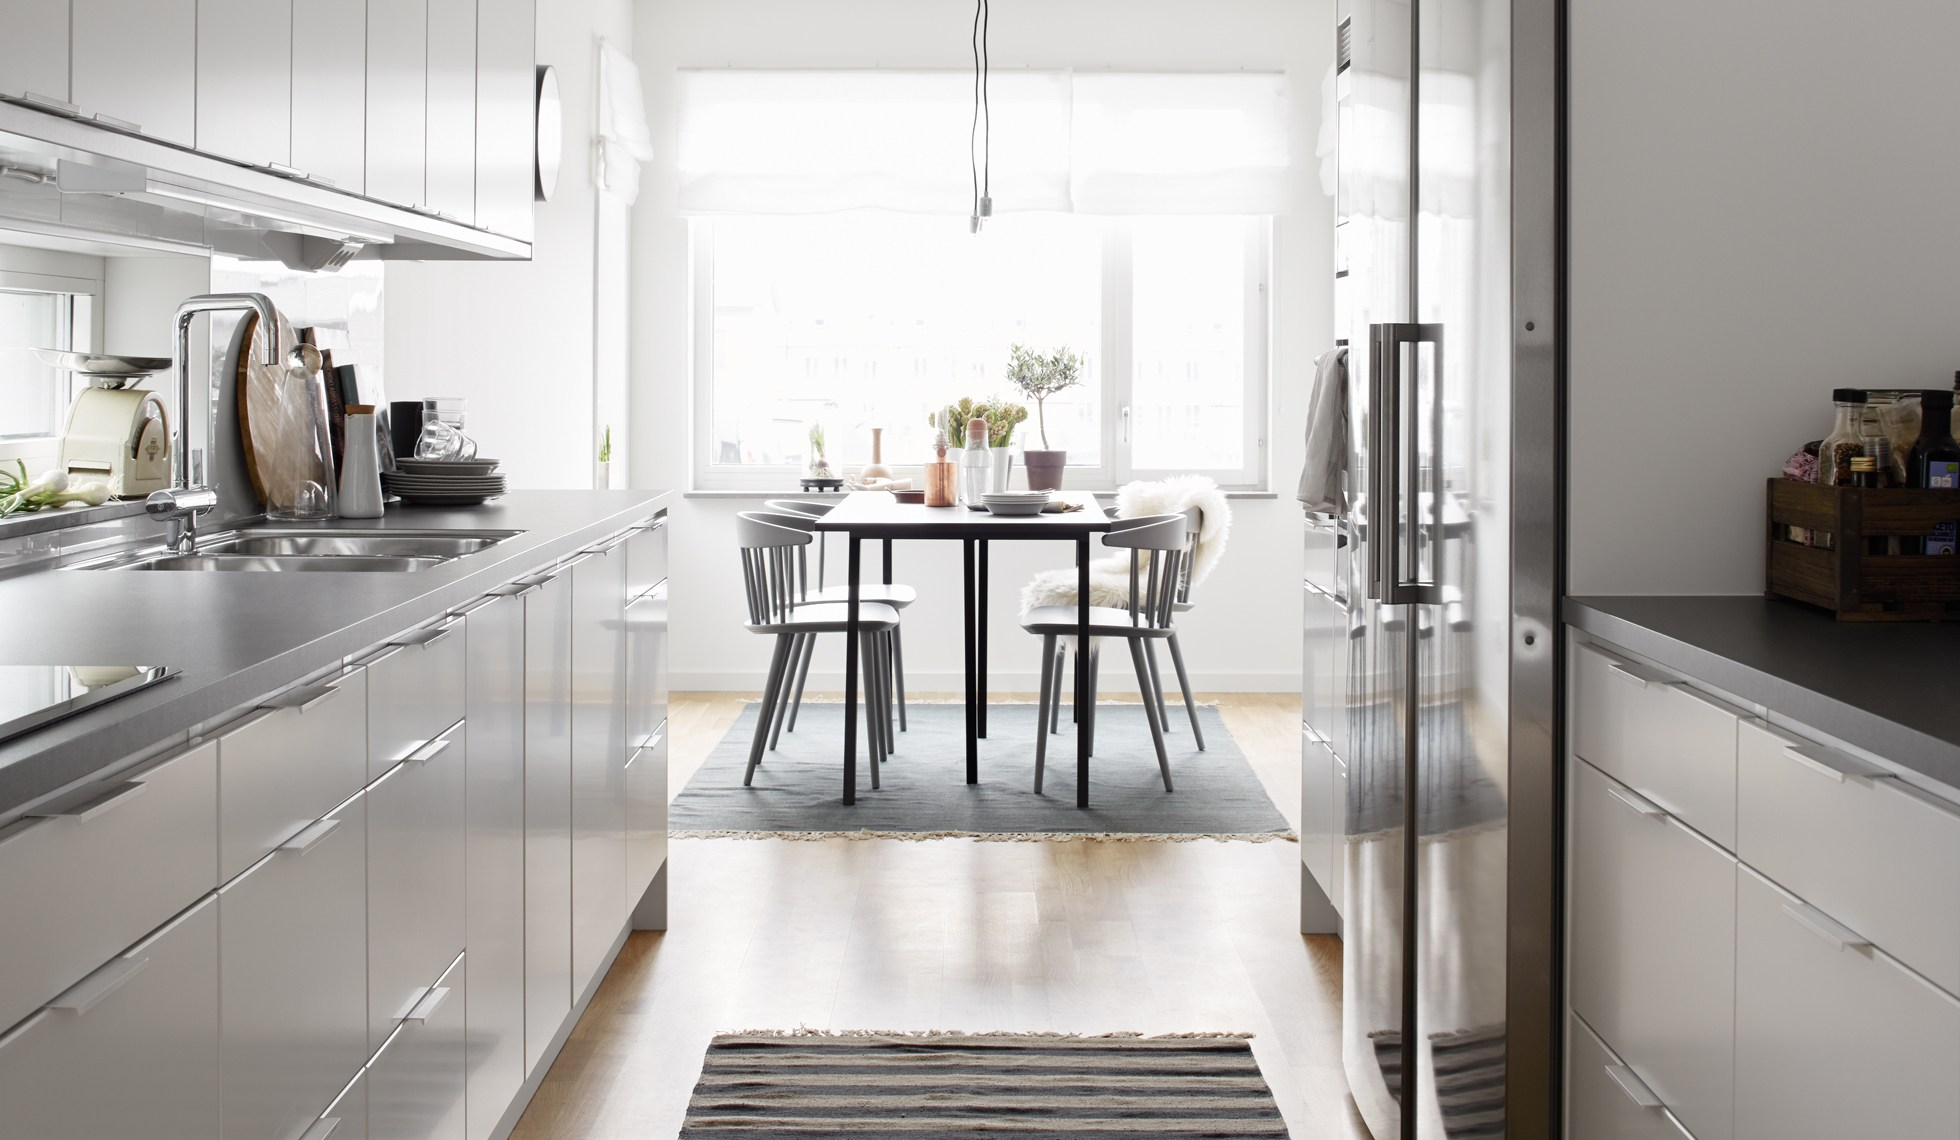 intereiru-allure-scandinave-cuisine-inox-table-mademoiselle -claudine